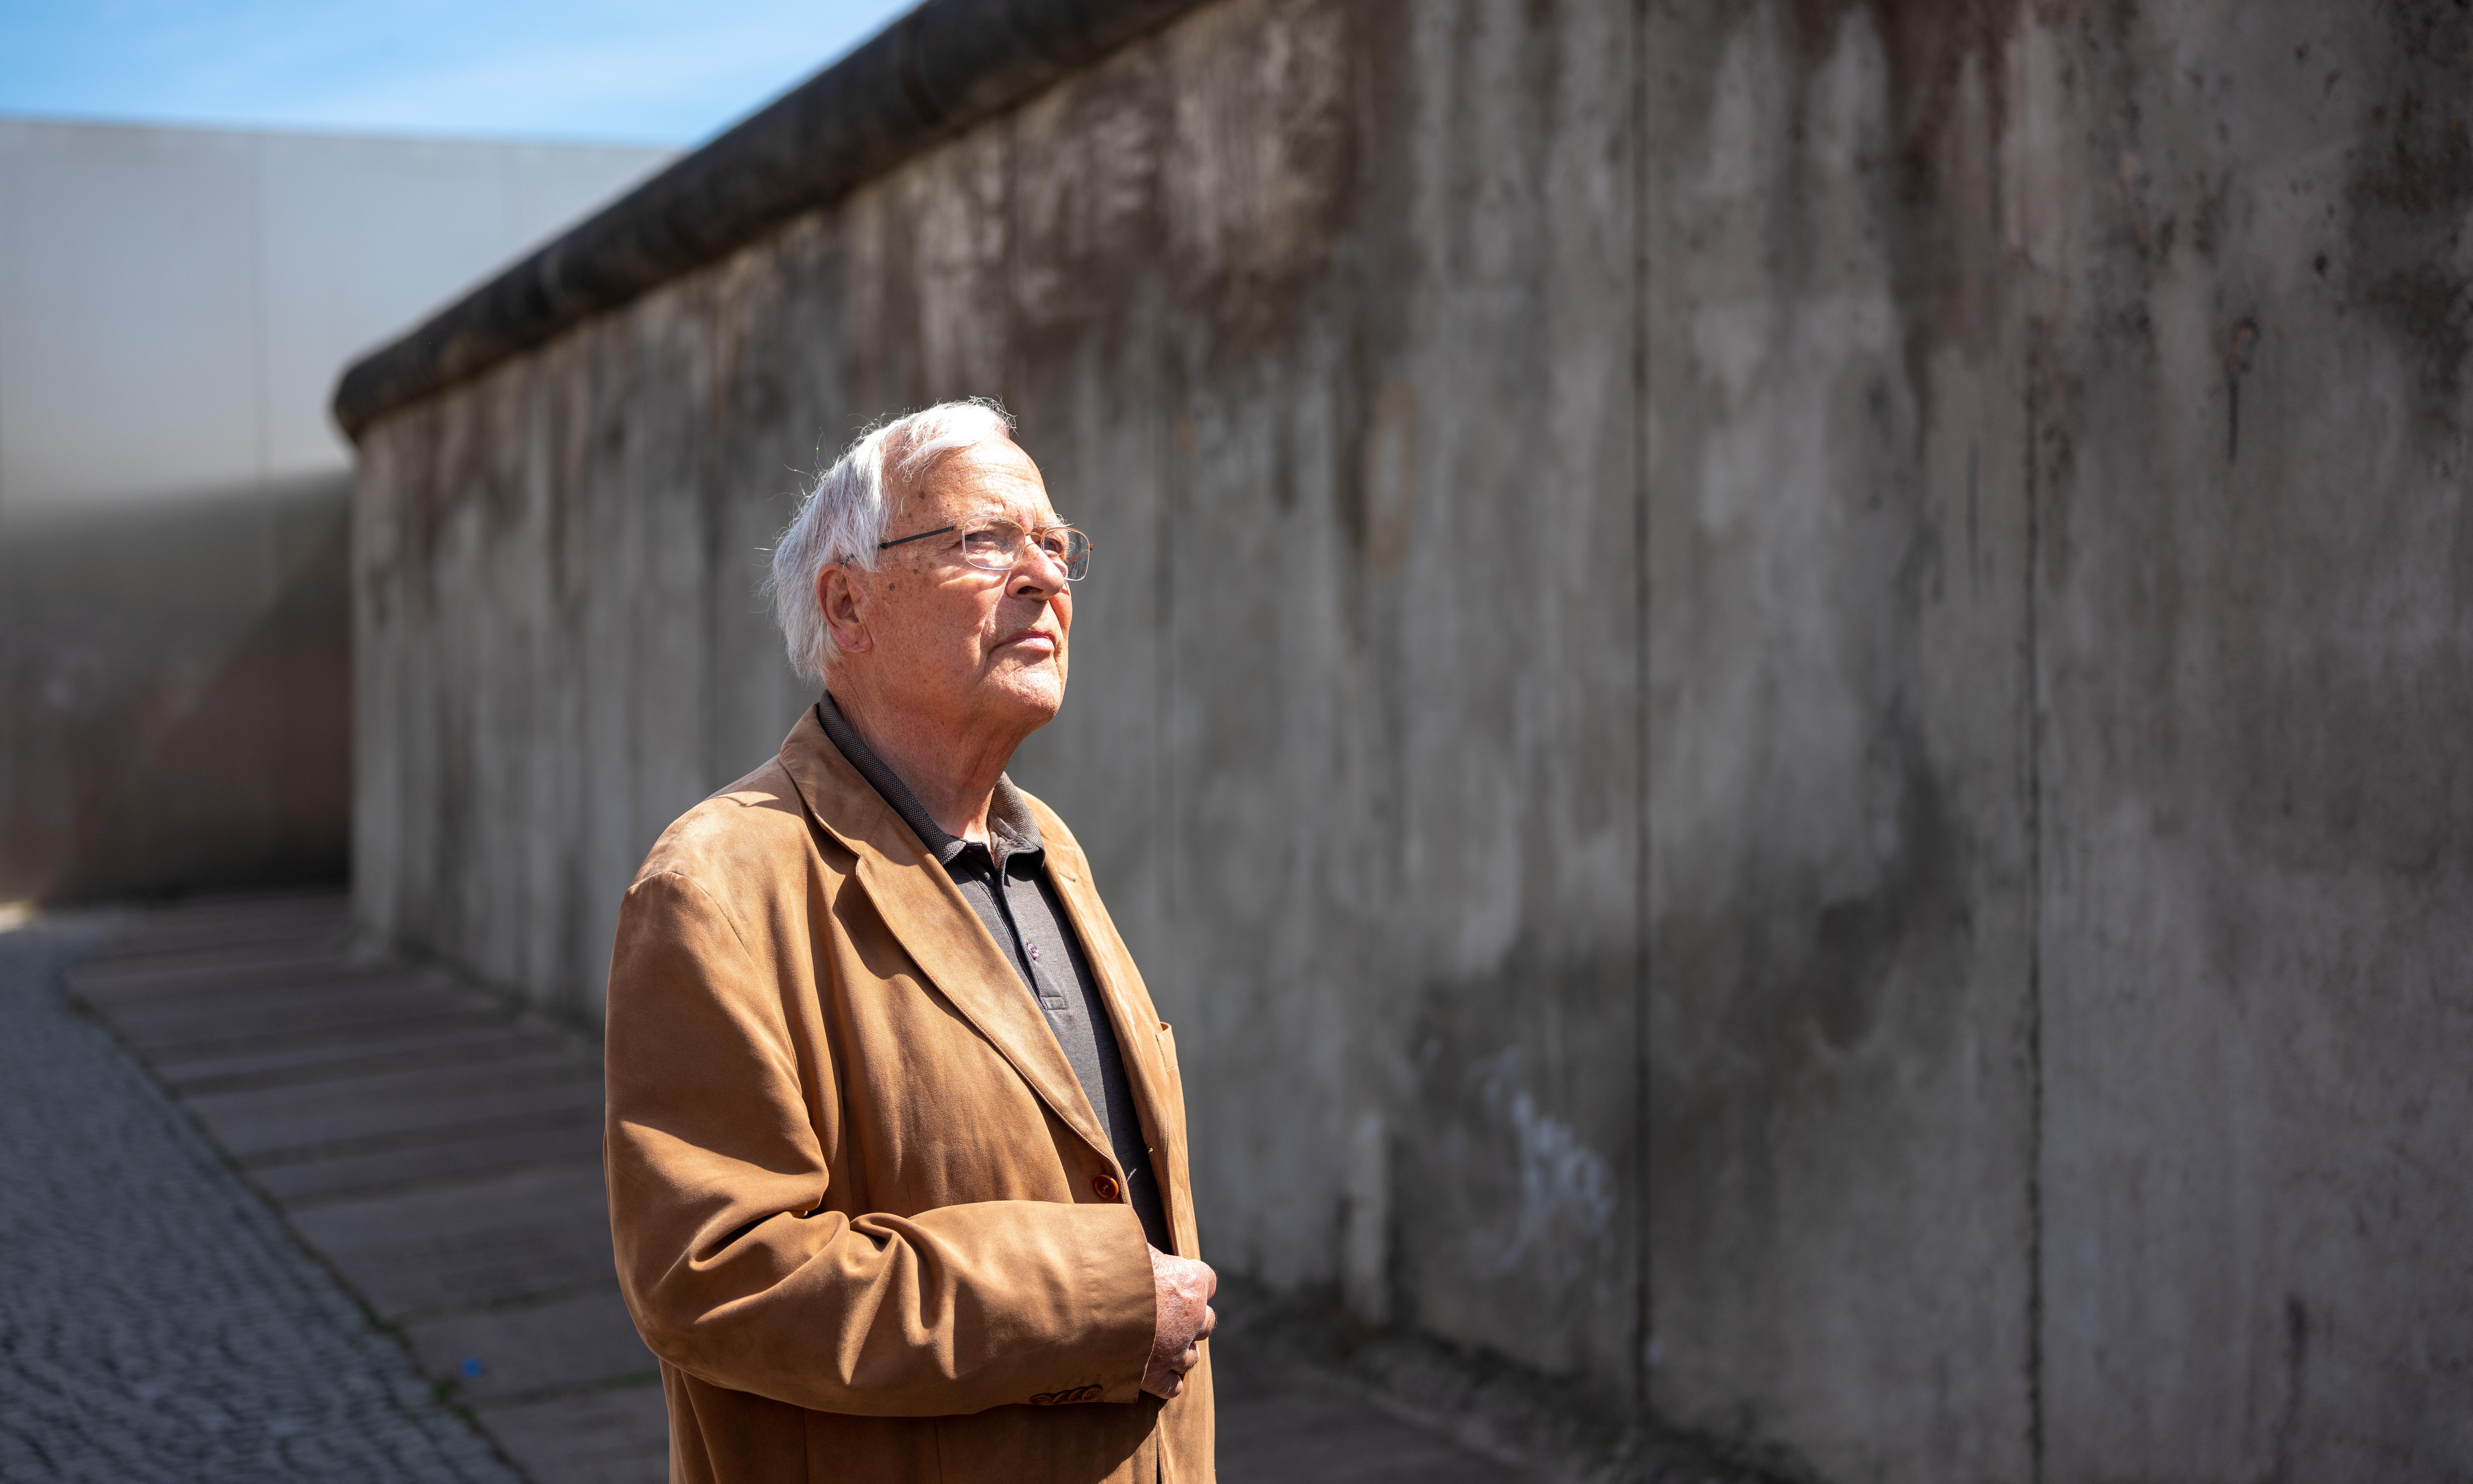 Experience: I tunnelled under the Berlin Wall